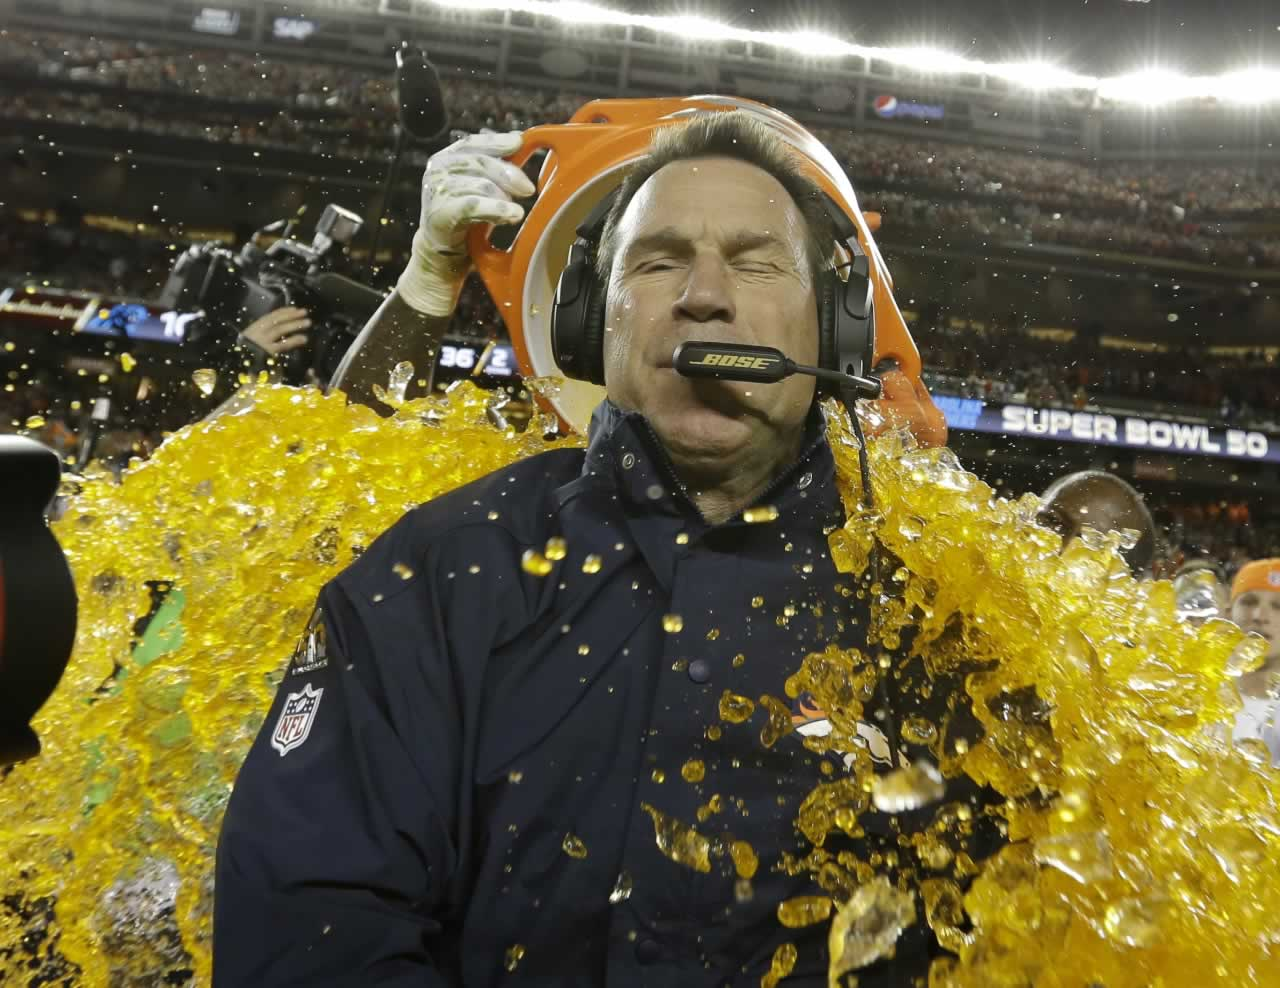 <div class='meta'><div class='origin-logo' data-origin='none'></div><span class='caption-text' data-credit='AP Photo/David J. Phillip'>Denver Broncos' head coach Gary Kubiak is doused with Gatorade during the second half of the NFL Super Bowl 50 football game Sunday, Feb. 7, 2016, in Santa Clara, Calif.</span></div>